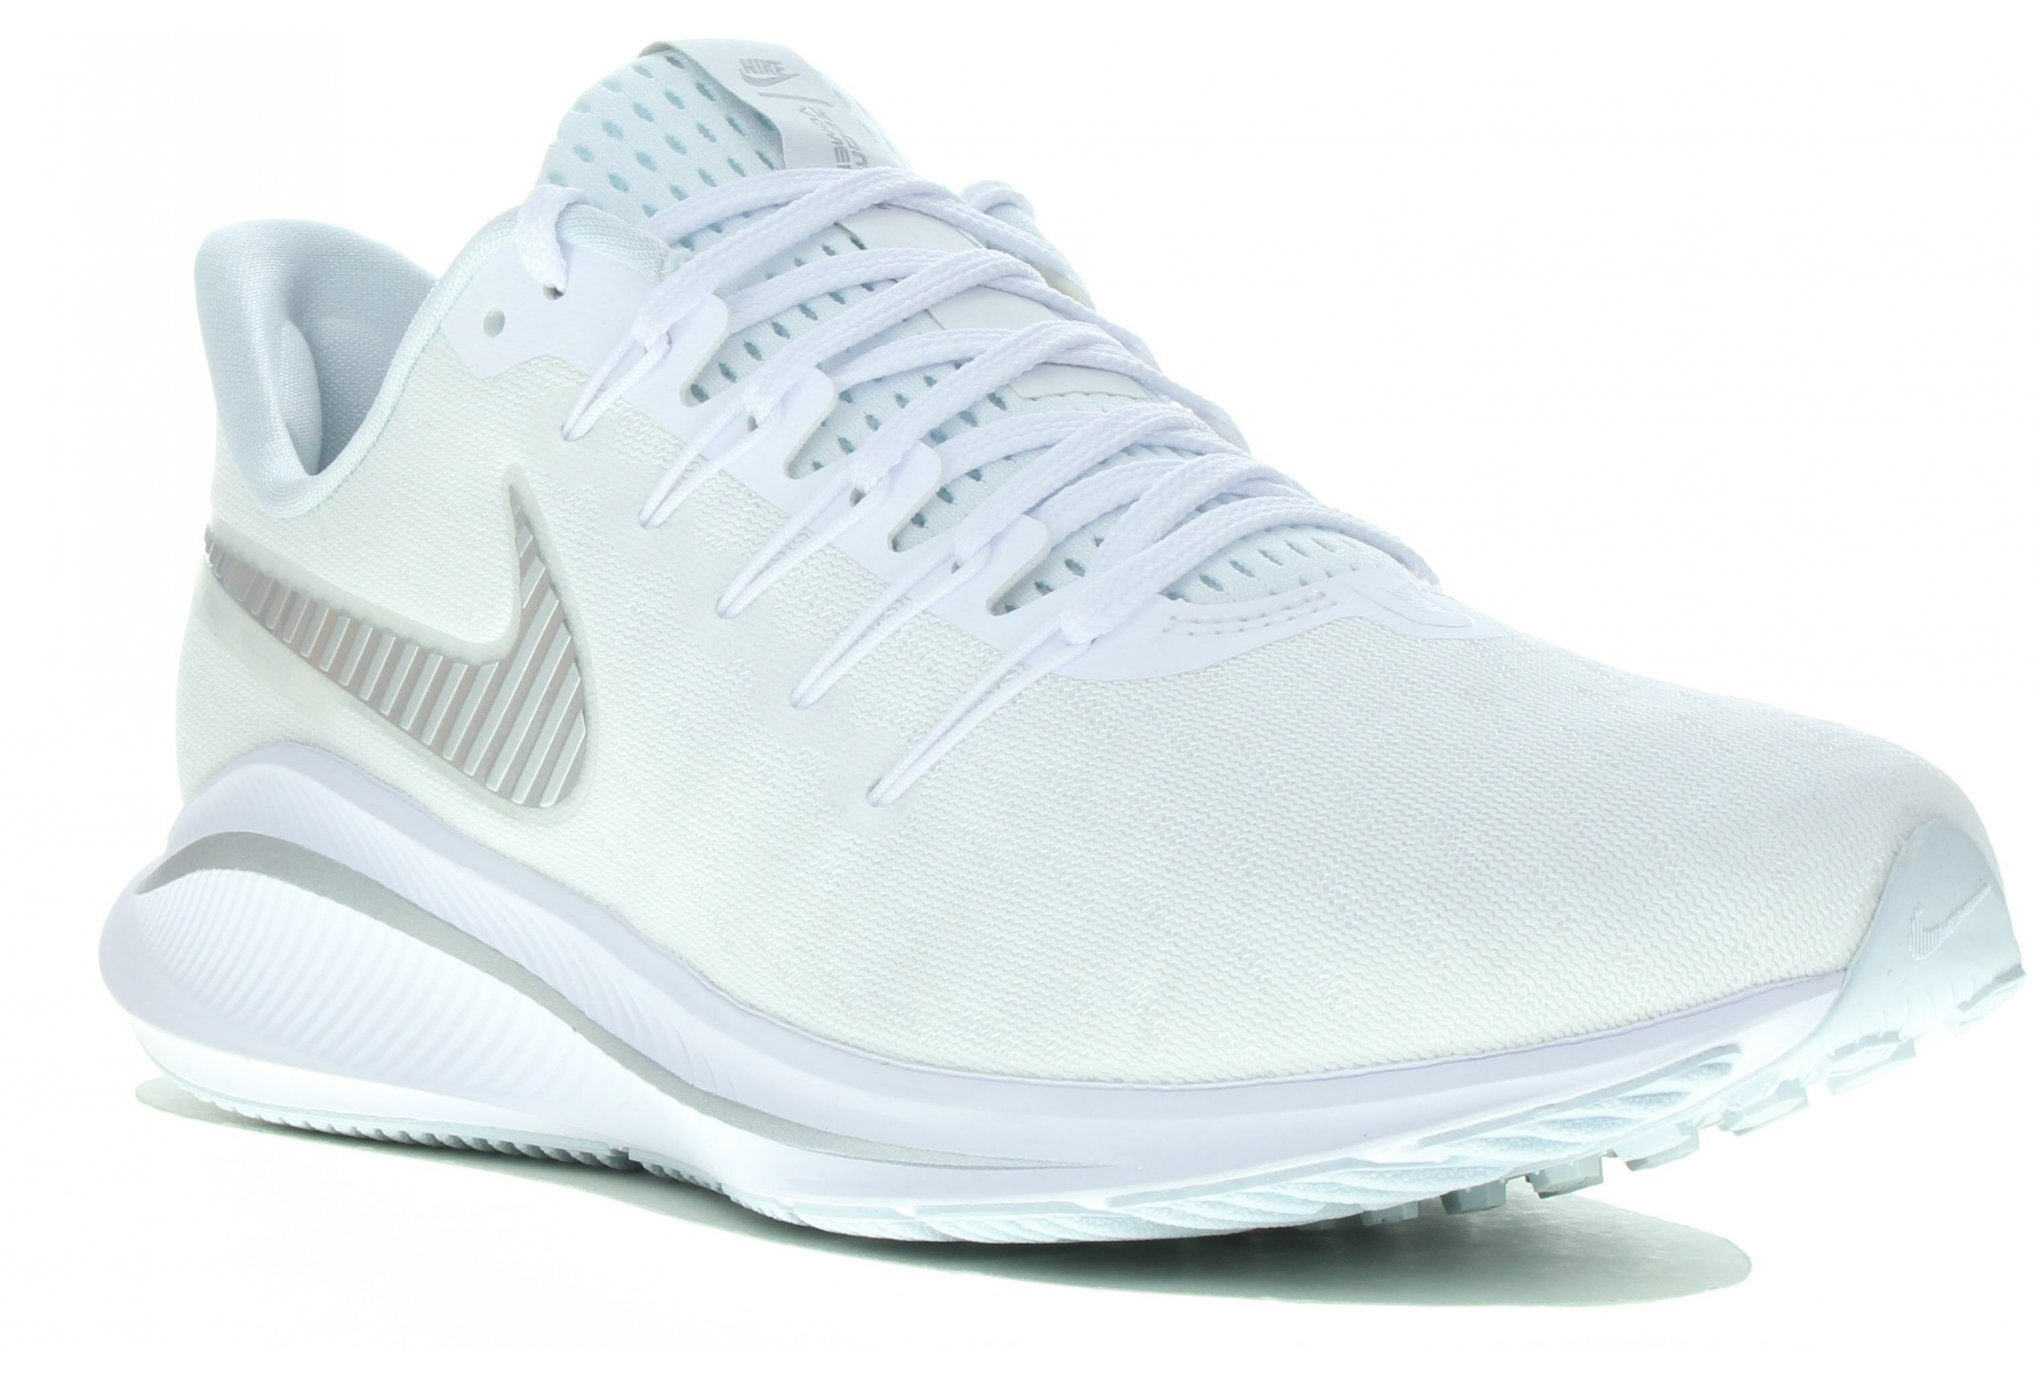 Nike Air Zoom Vomero 14 W Chaussures running femme